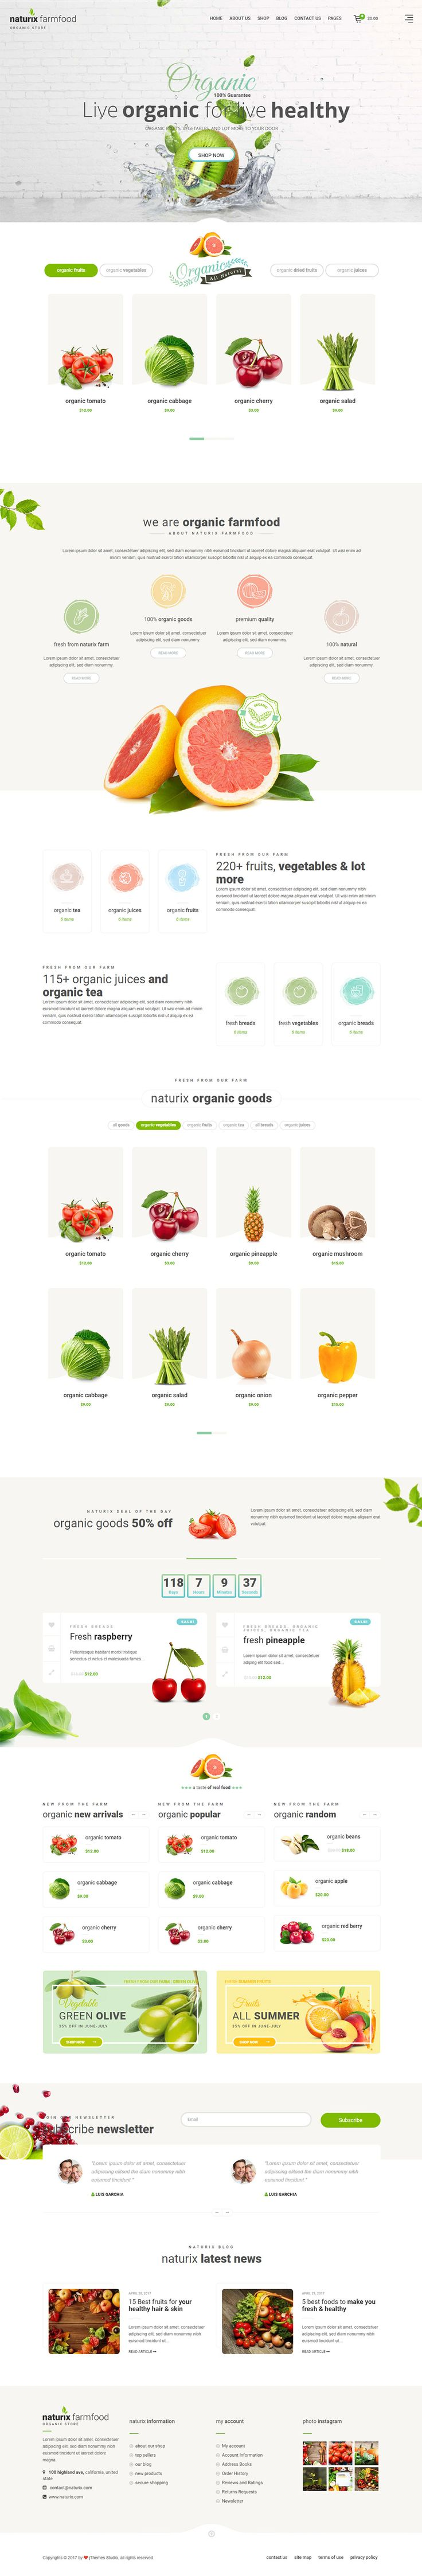 Naturix organic store is designed for Organic Store, Food market, Online food, natural items. It comes with 4 home pages and many inner pages. Naturix WordPress version is built with Bootstrap v3 and its fully tested with WordPress 4.8 and Woocommerce 3.x.